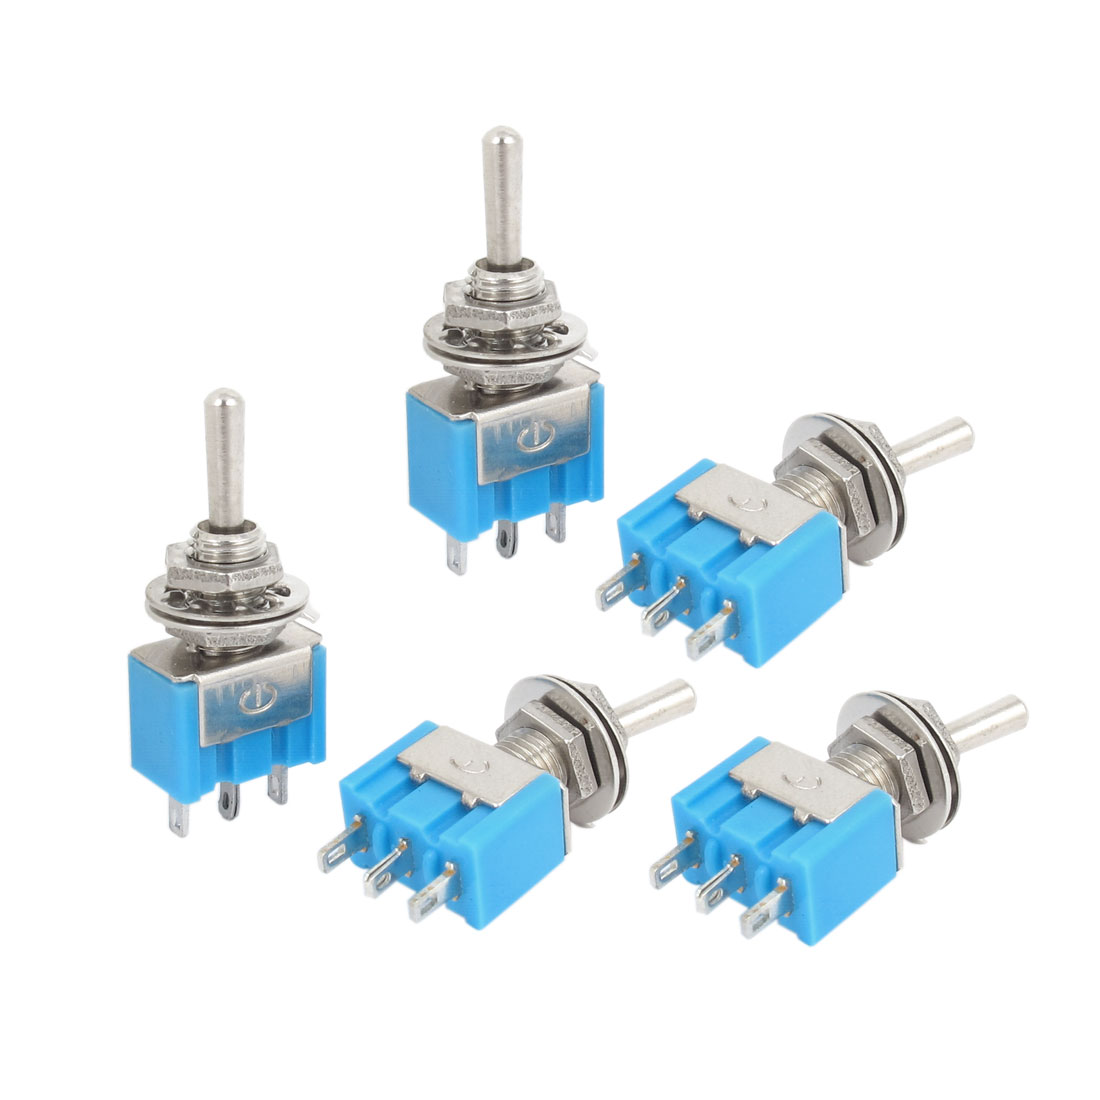 5pcs AC 125V 6A ON/OFF/ON 3-Position SPDT 3 Terminals Mini Latching Toggle Switch